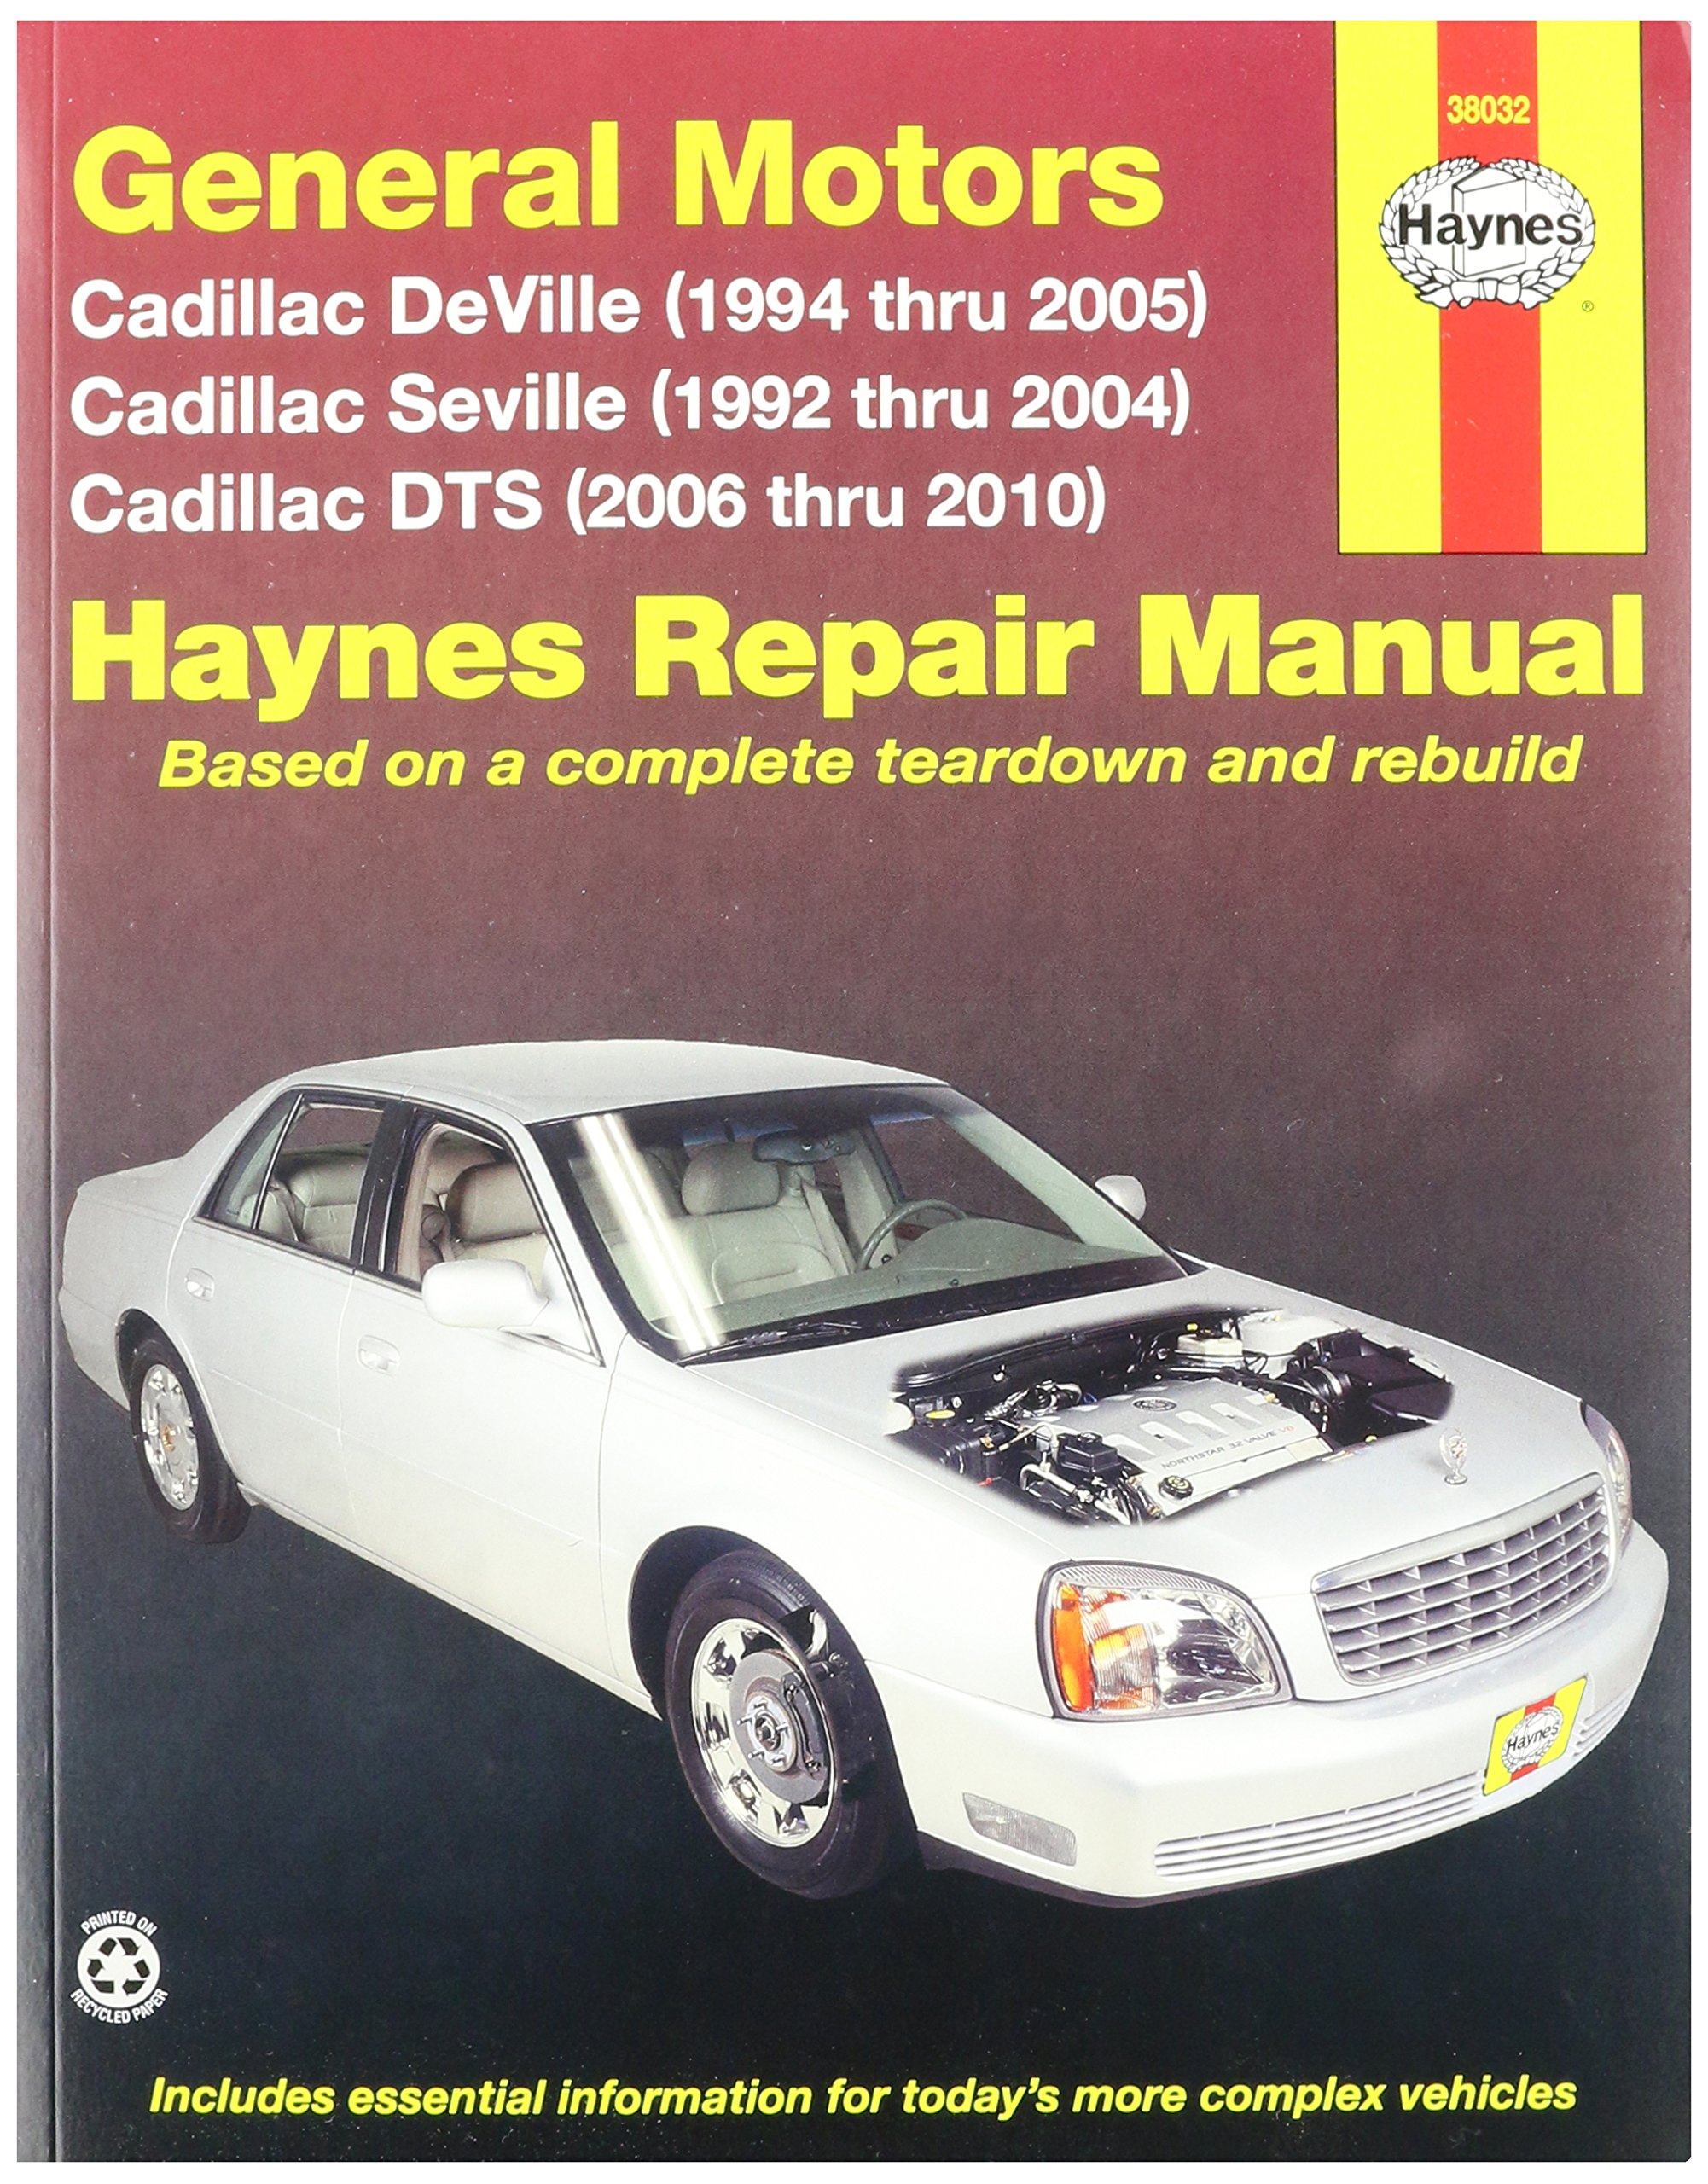 Haynes General Motors: Cadillac DTS, Deville and Seville (92-10) Manual  (38032): 0038345380327: Amazon.com: Books